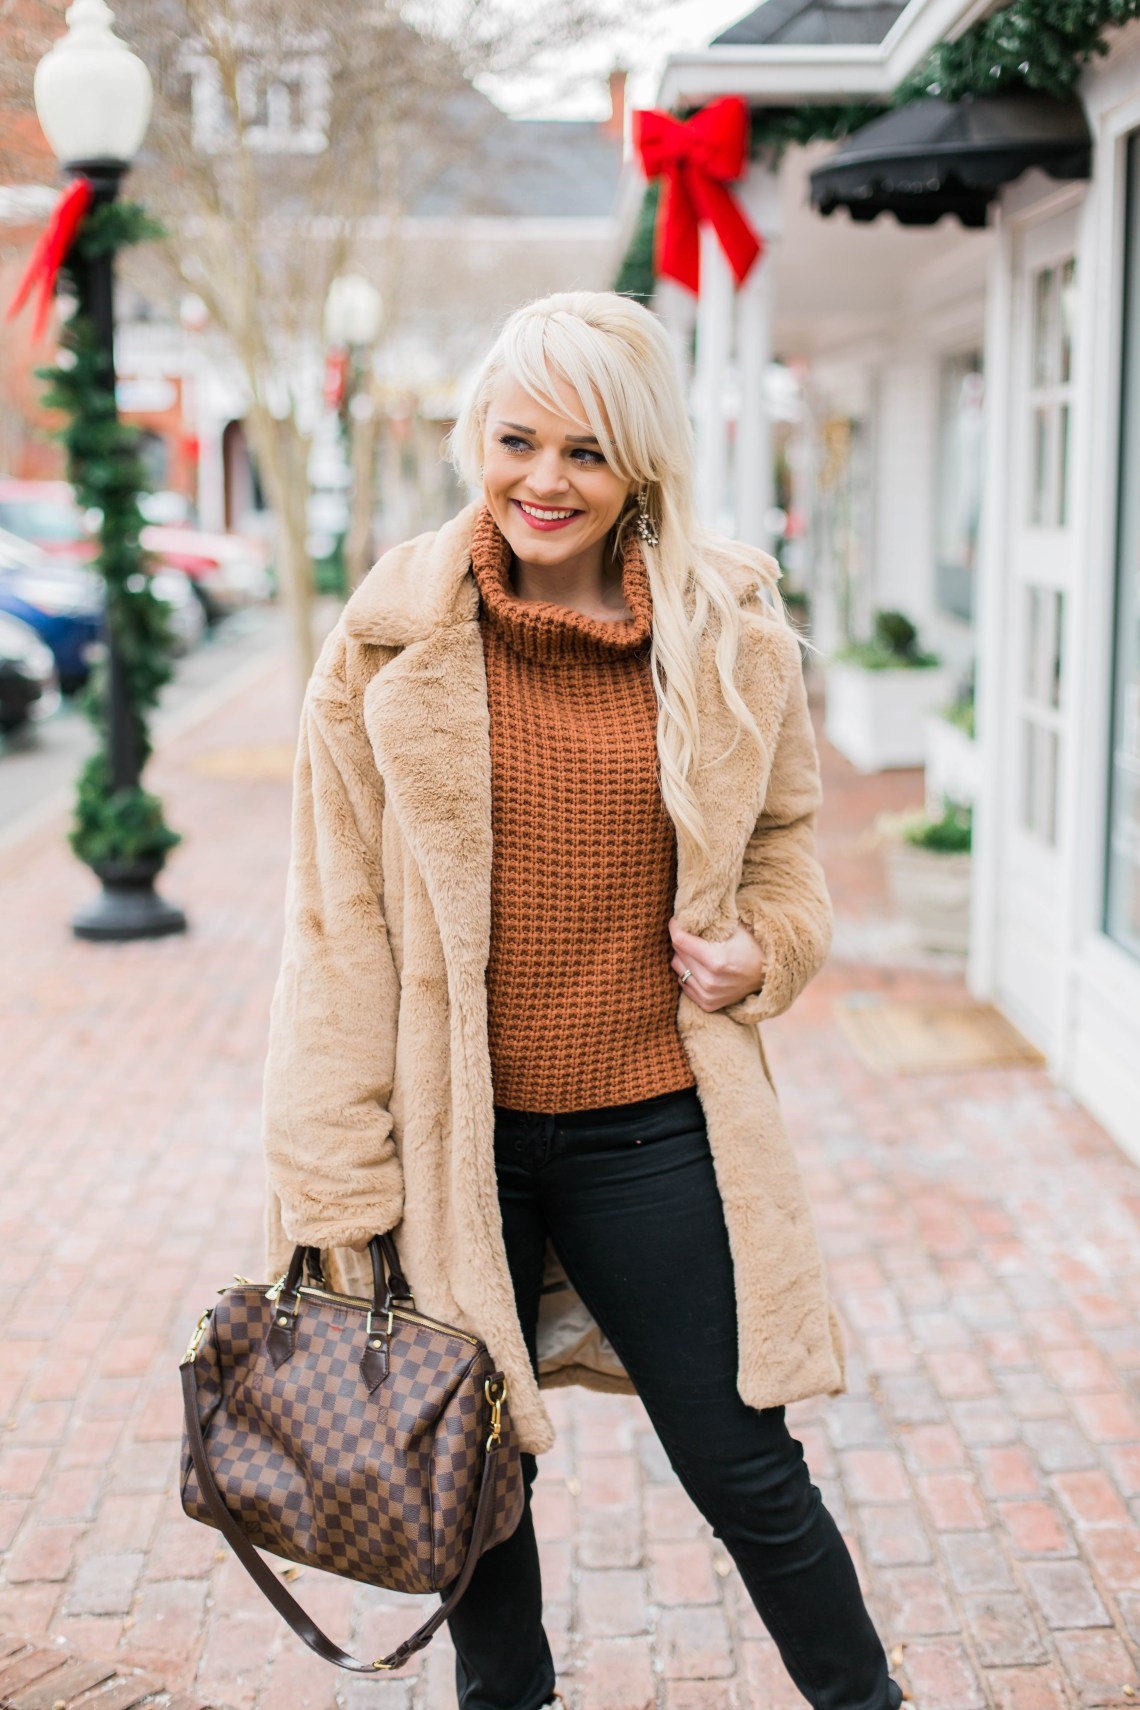 essential-winter-layers-free-people-sweater-faux-fur-jacket-urban-blonde